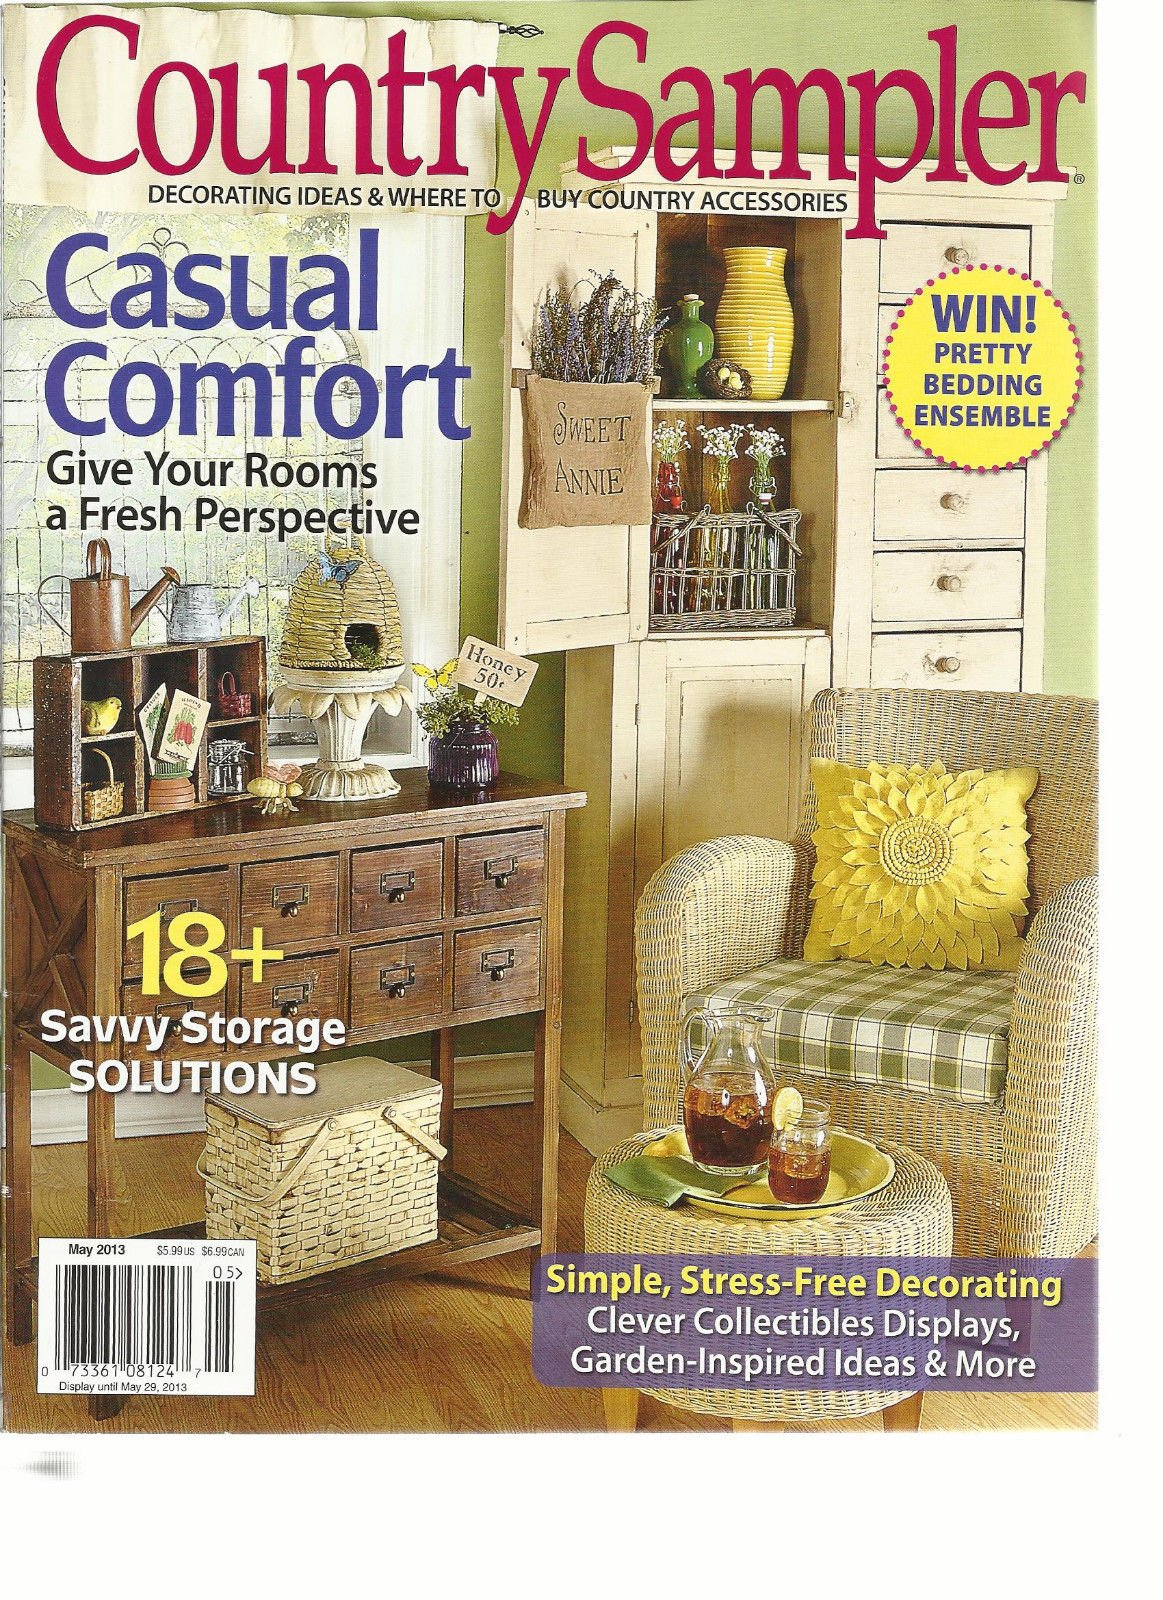 COUNTRY SAMPLER, MAY, 2013 (DECORATING IDEAS & WHERE TO BUY COUNTRY ACCESSOR